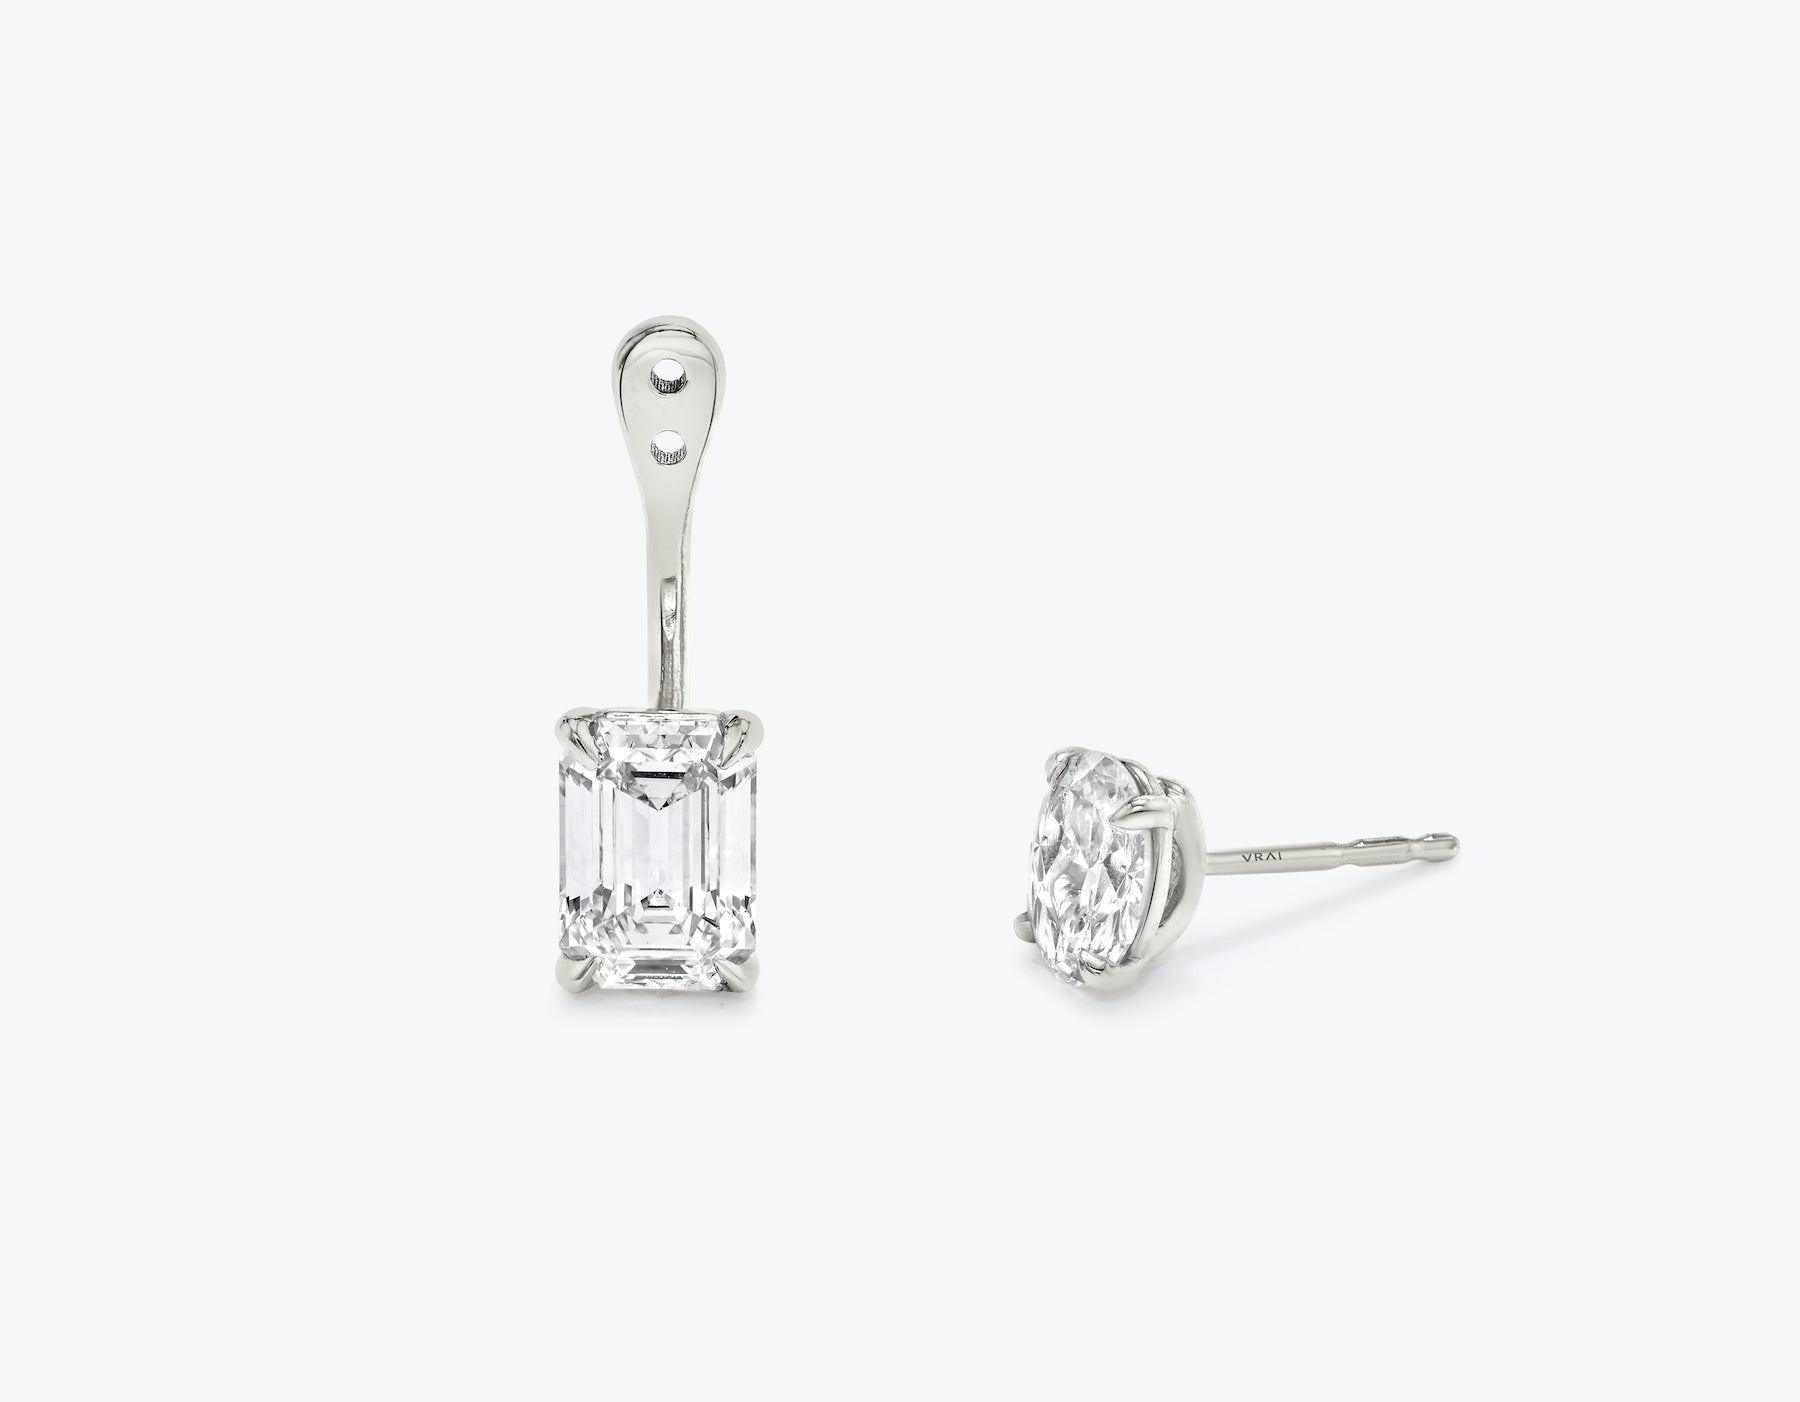 Vrai solitaire emerald diamond drop ear jackets made in 14k solid gold with sustainably created diamonds with round solitaire diamond stud, 14K White Gold